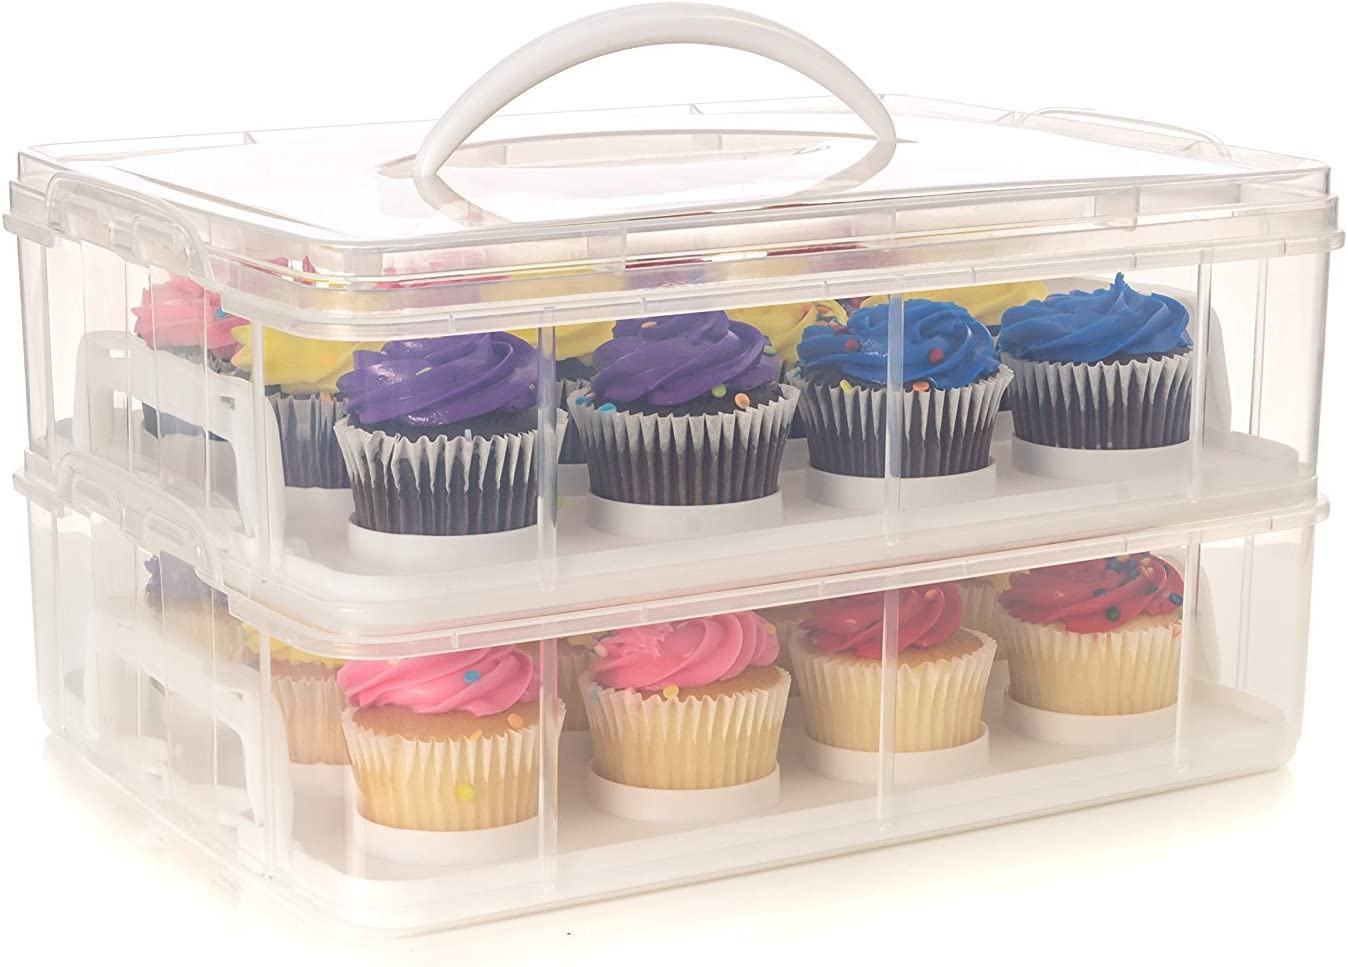 24 Large Cupcake Carrier Two Holder Cake Stack Max Over item handling 76% OFF Tiered